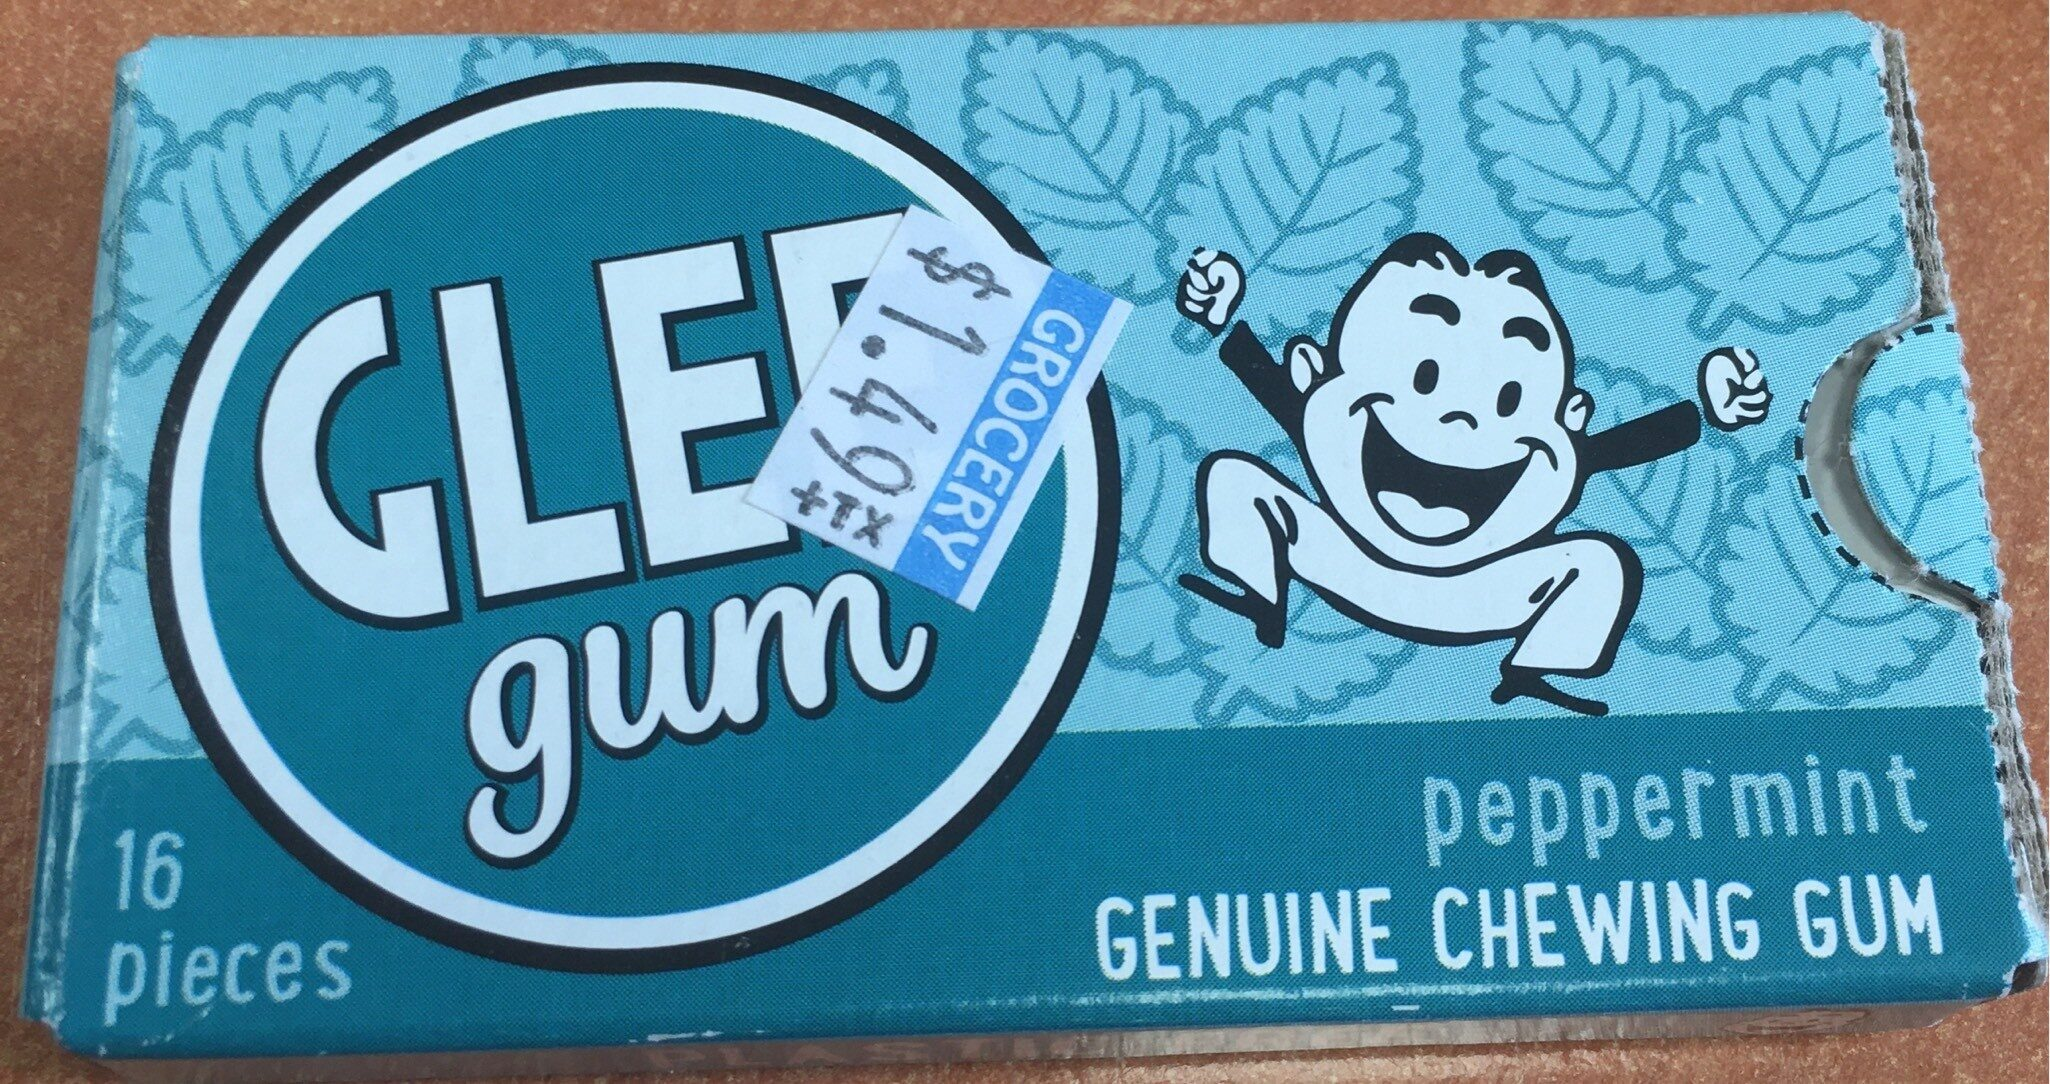 Peppermint Natural Chewing Gum - Product